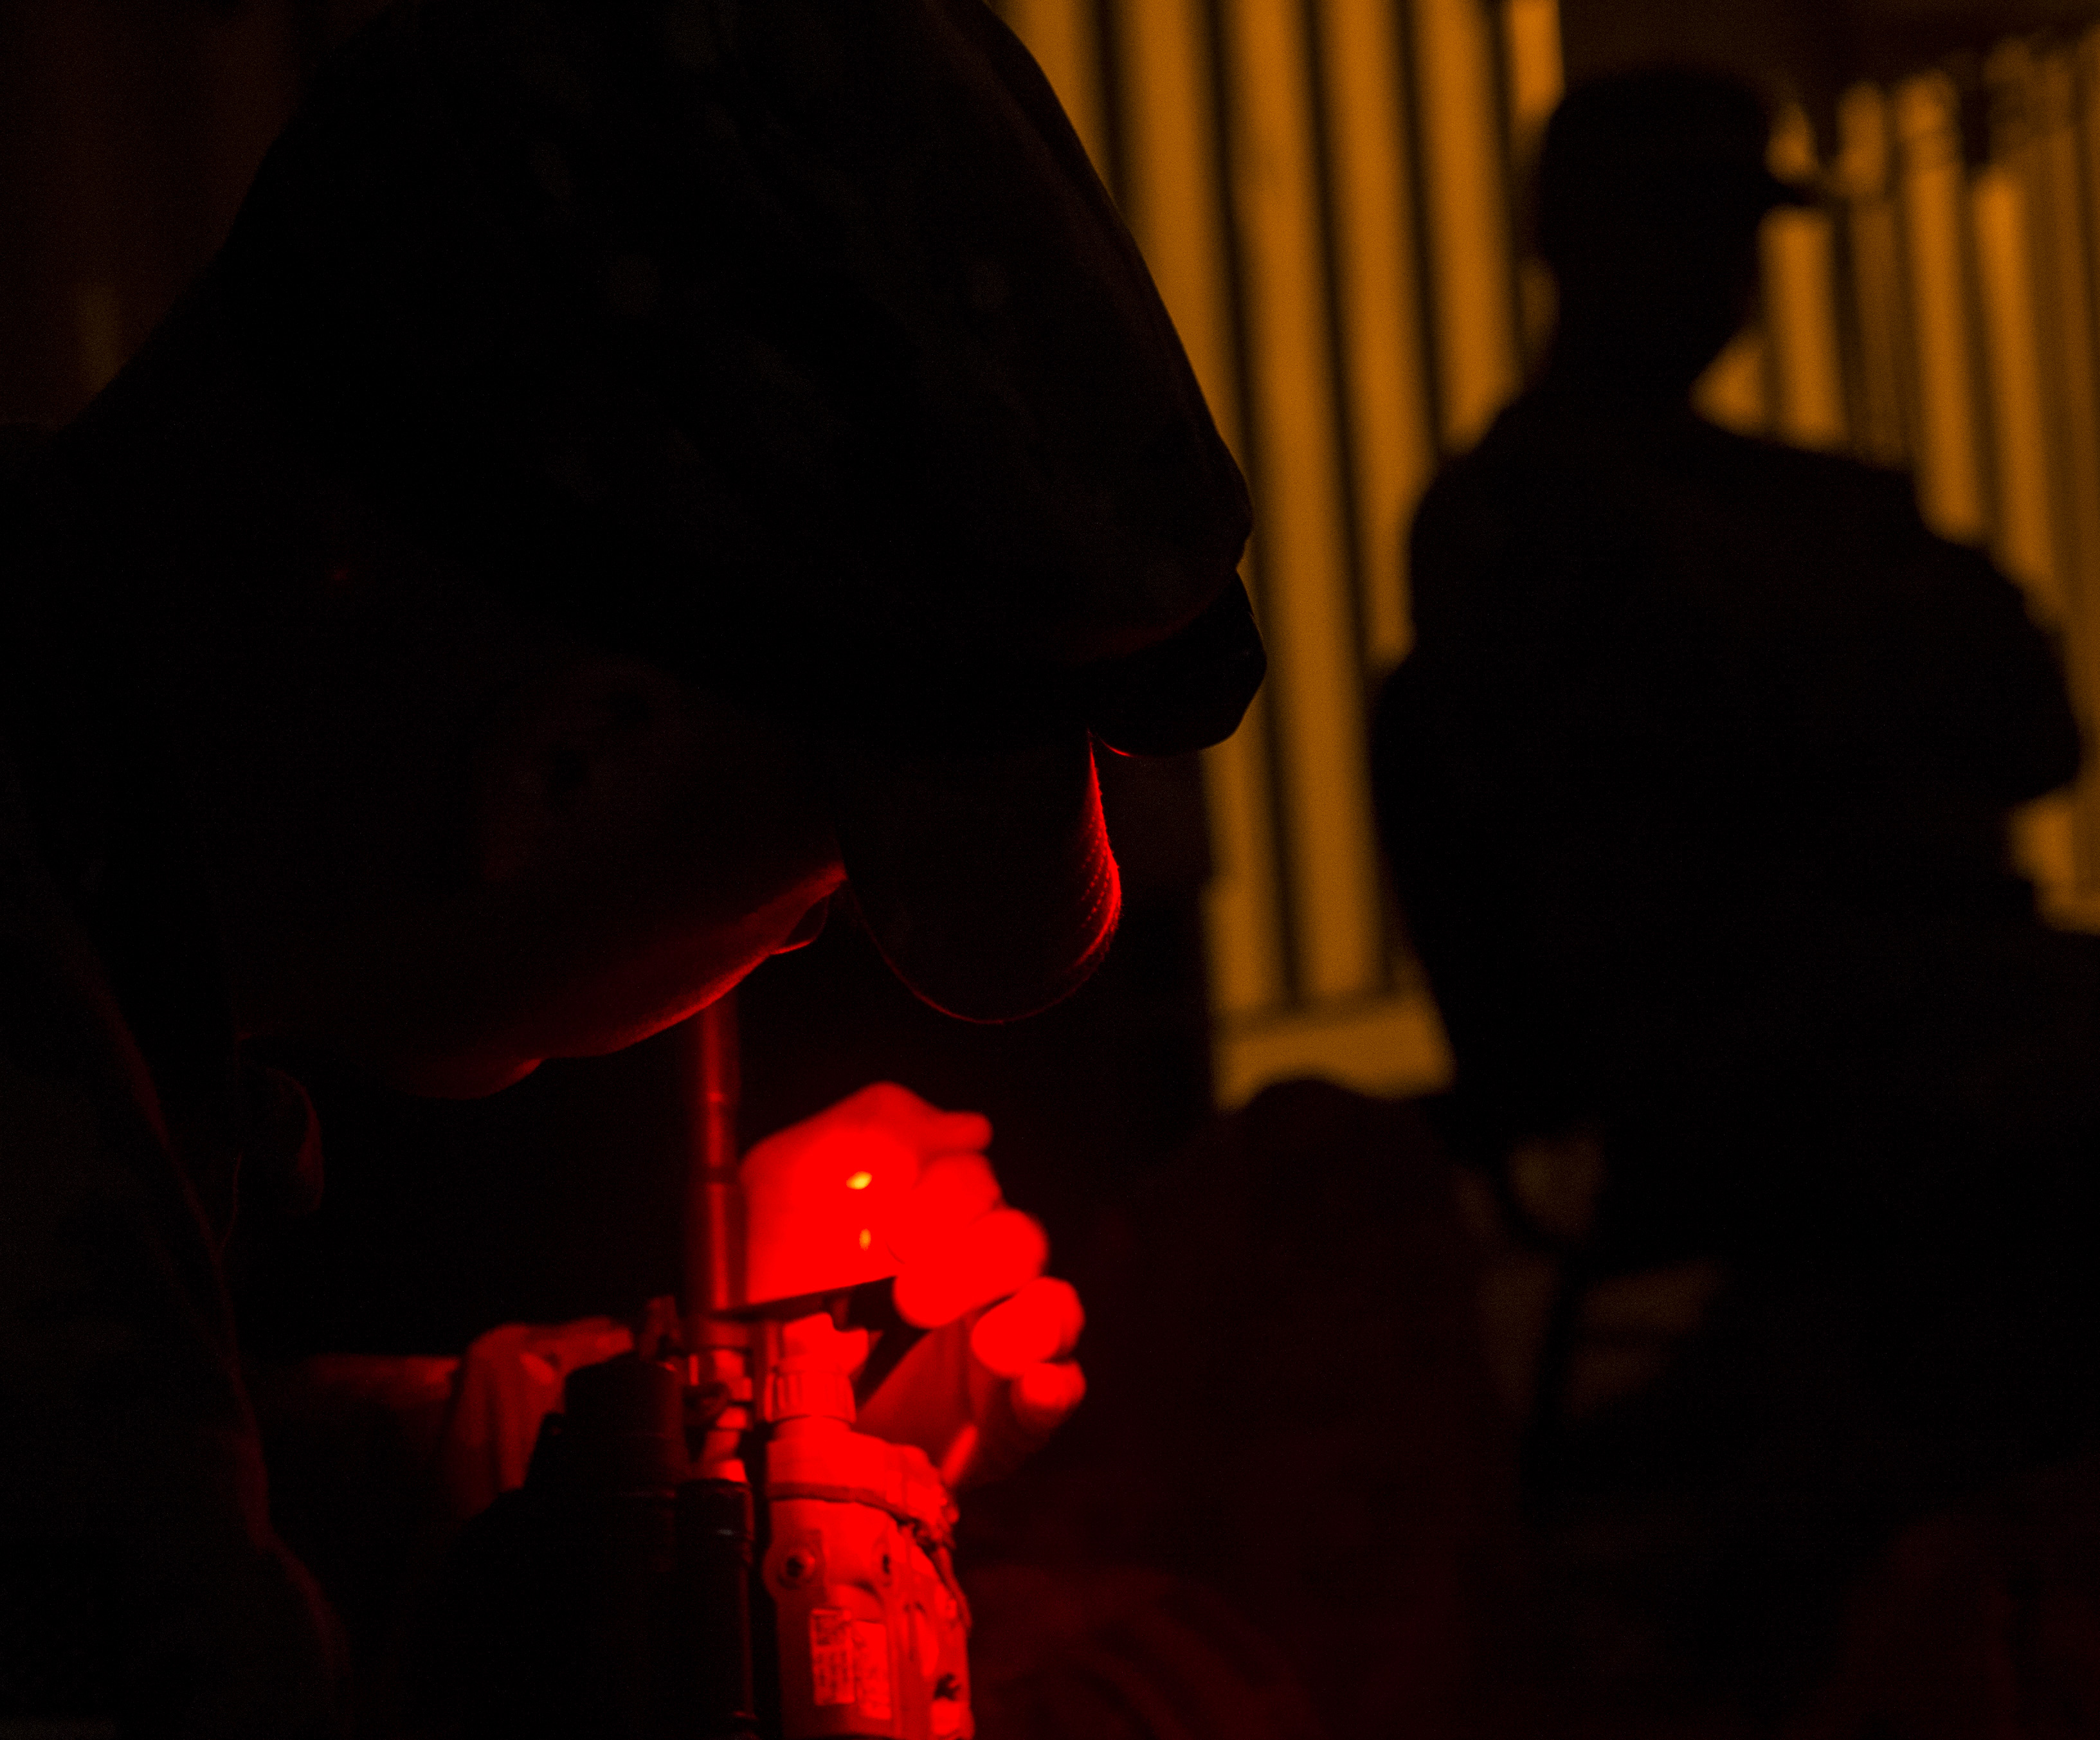 A U.S. Army Soldier from Bravo Company, 3rd Battalion, 15th Infantry Regiment, verifies his laser is properly functioning Feb. 13, 2016, at Camp Lemonnier, Djibouti. The East Africa Response Force serves as a part of U.S. Africa Command's crisis response capability, and is tasked with responding to emergency situations at U.S. Embassies in the East African region or in countries around the CJTF-HOA area of responsibility. (U.S. Air Force photo by Senior Airman Peter Thompson)